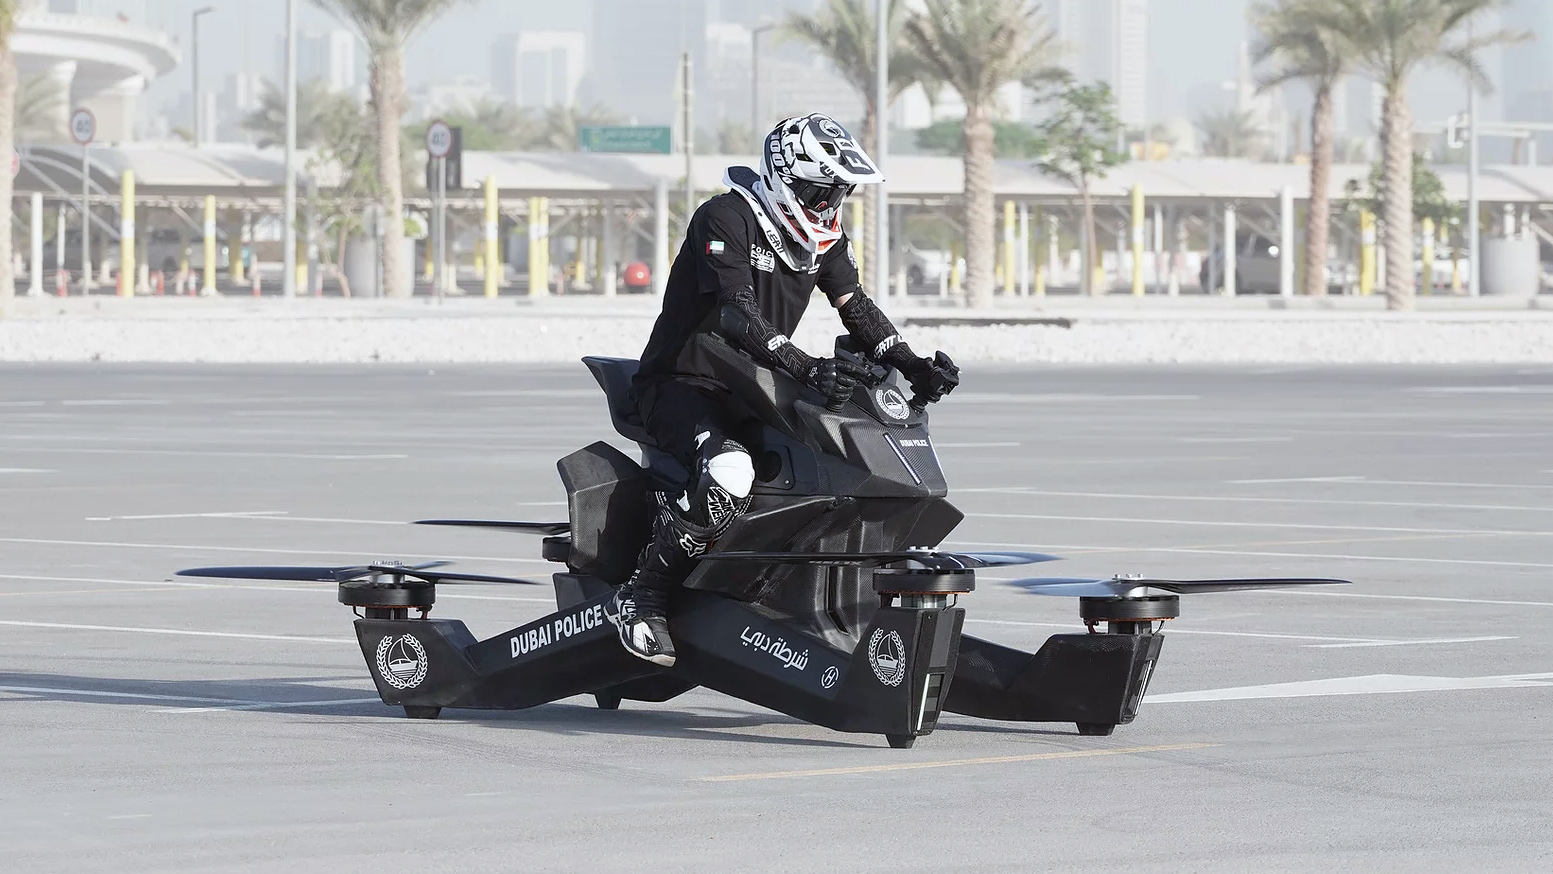 The First Ever Hoverbike in the world